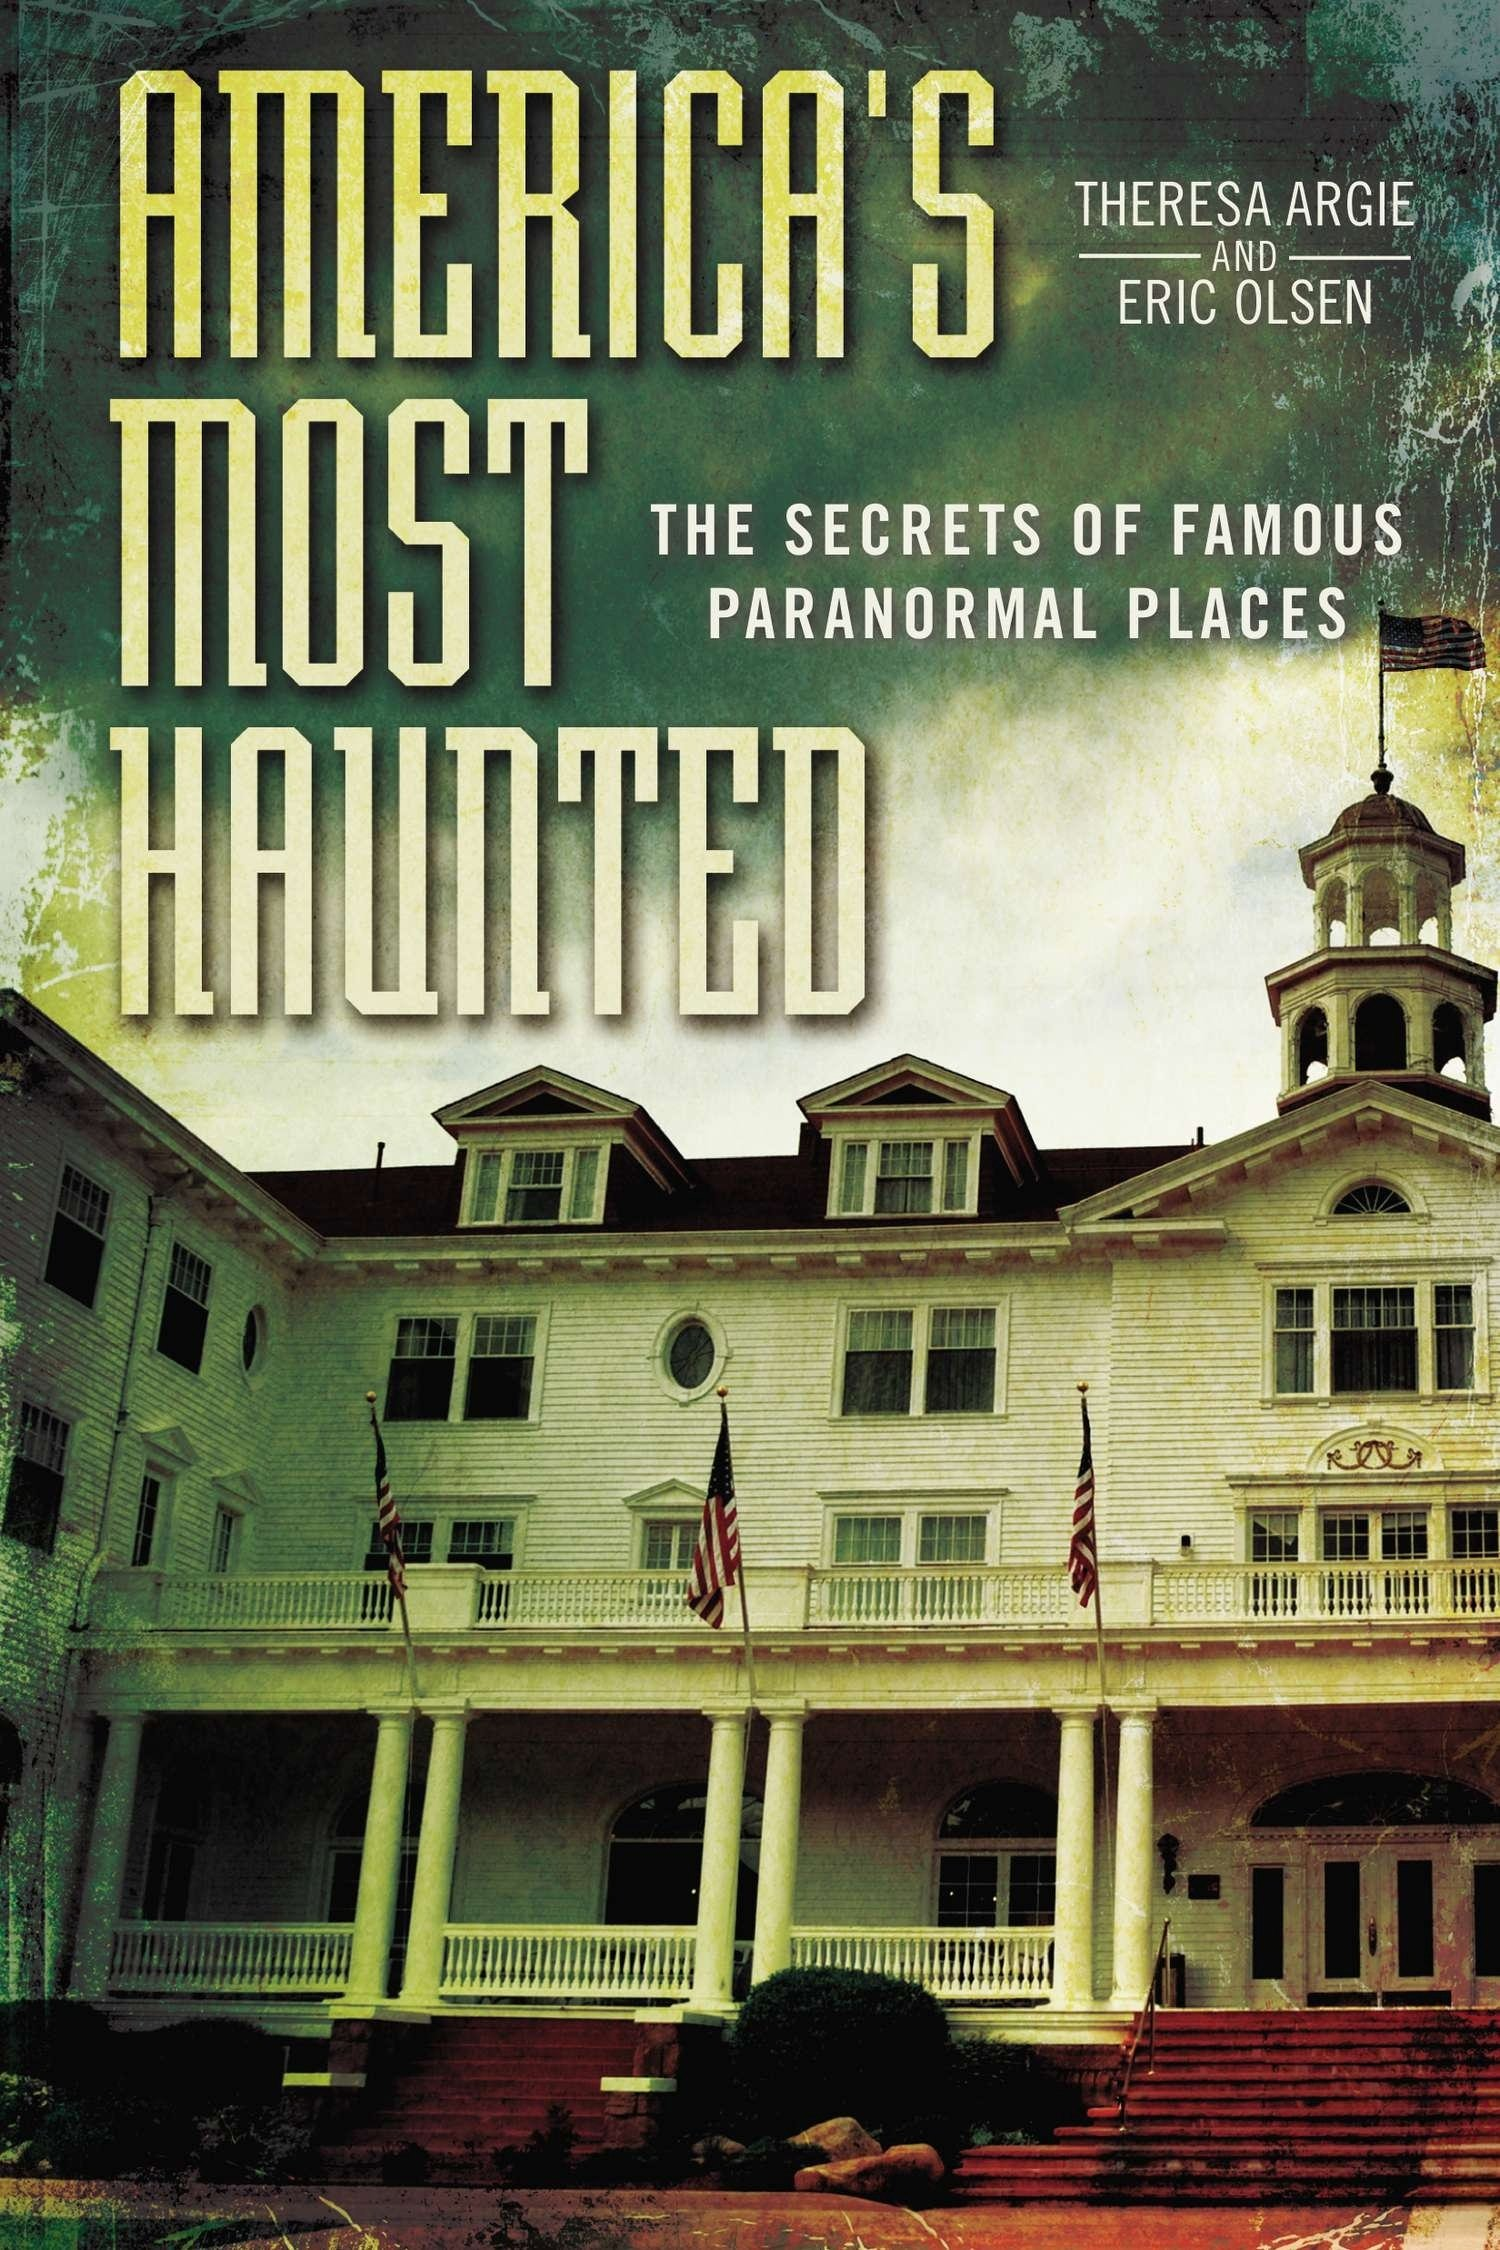 Amazon americas most haunted the secrets of famous amazon americas most haunted the secrets of famous paranormal places 9780425270141 eric olsen theresa argie books fandeluxe Gallery